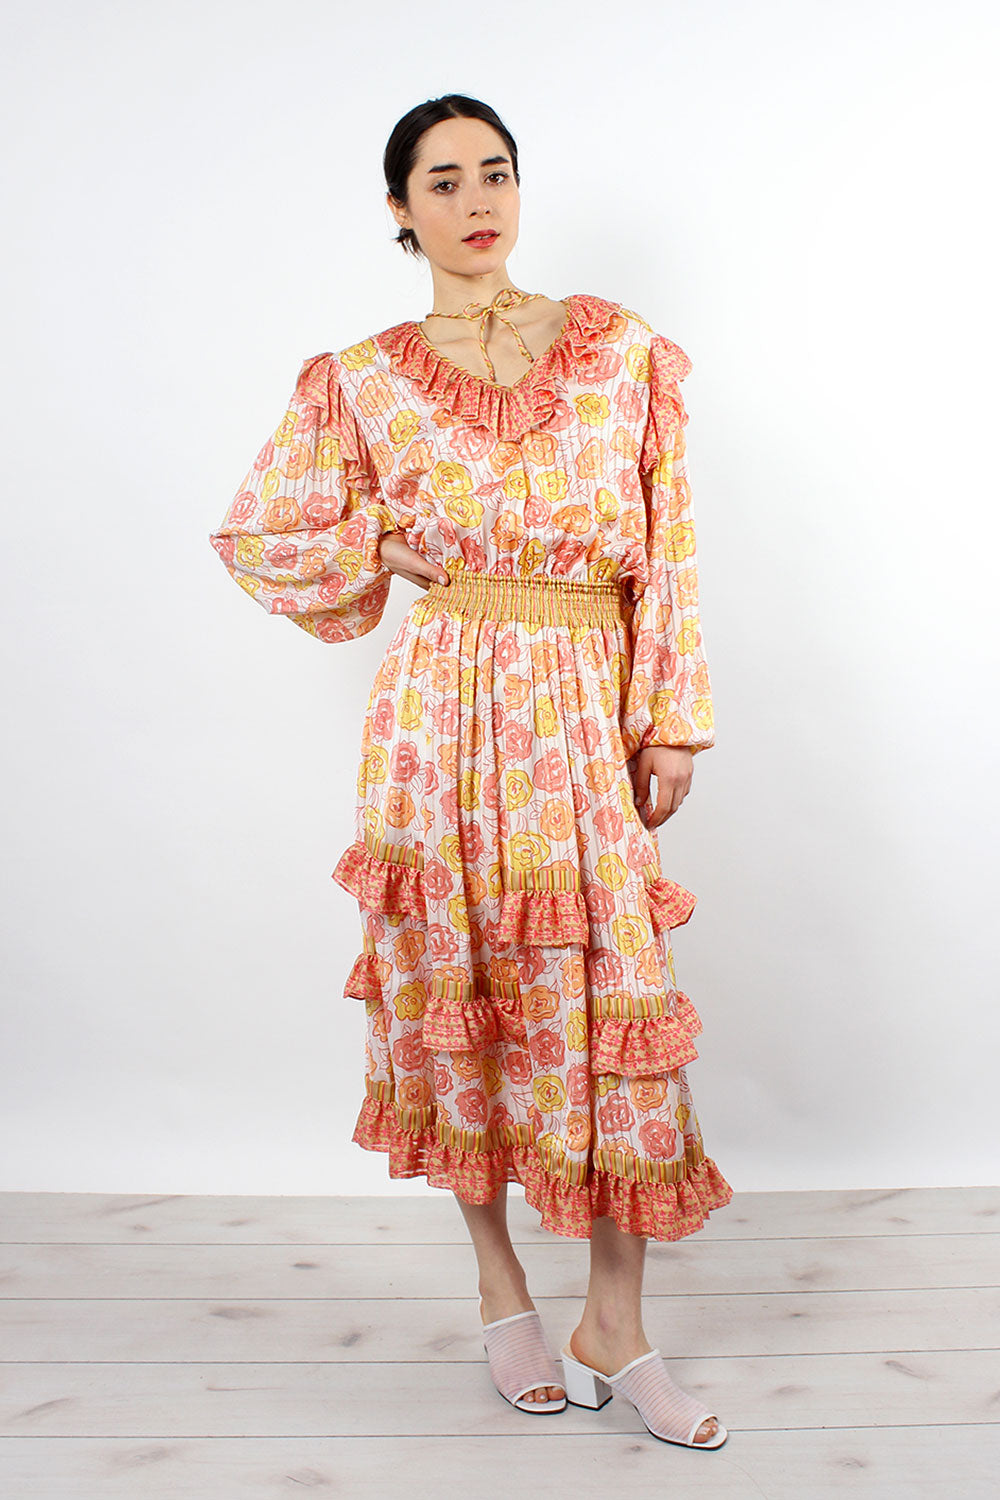 Sherbert Floral Ruffle Dress S-L